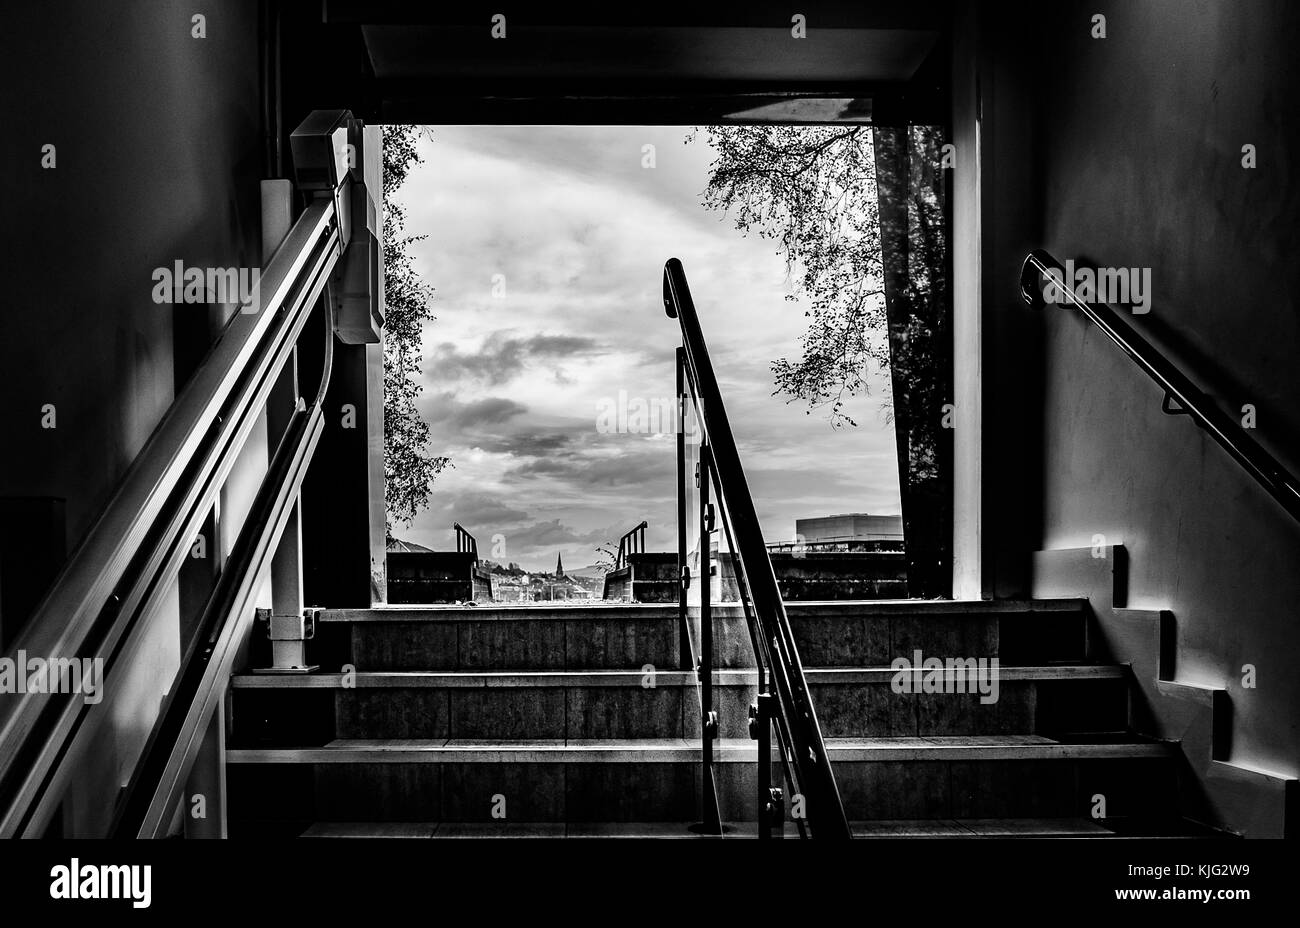 Stairway leading up to external view of town buildings in black and white - Stock Image